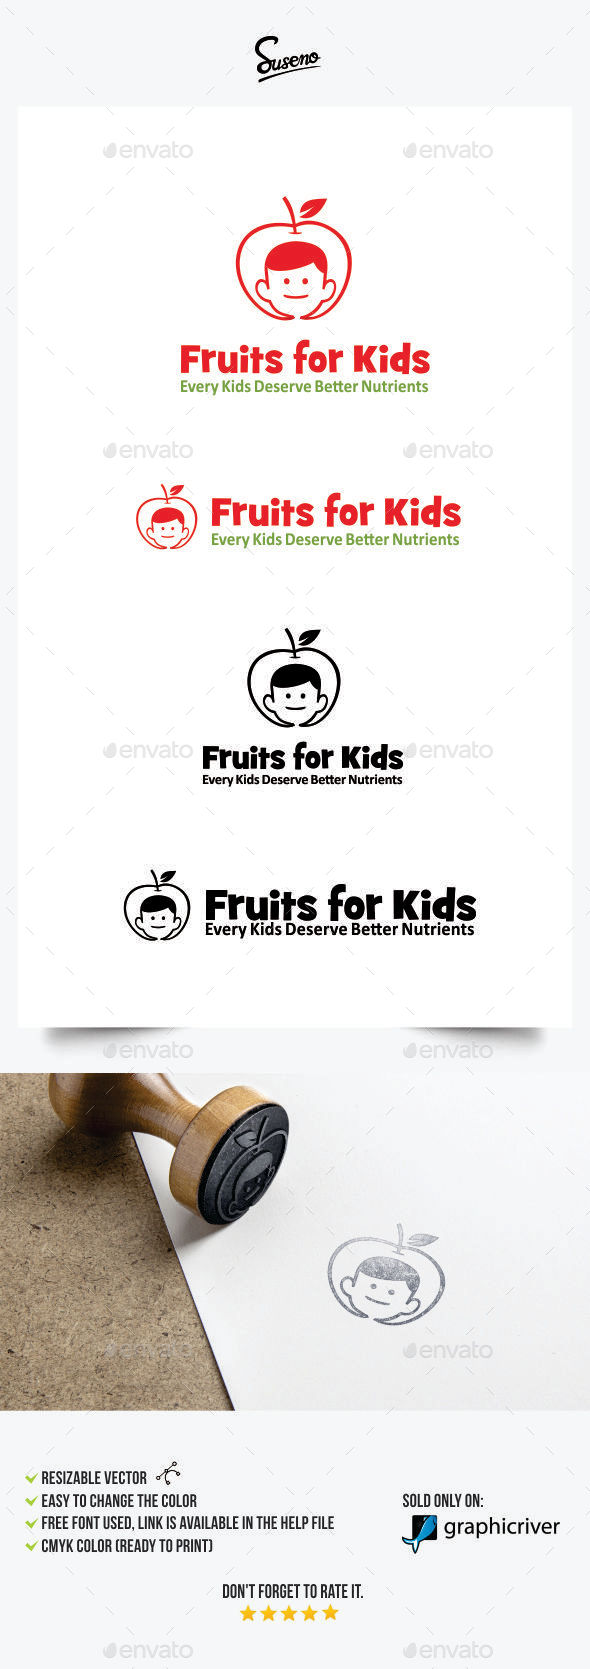 GraphicRiver Fruits for Kids Logo 11300569